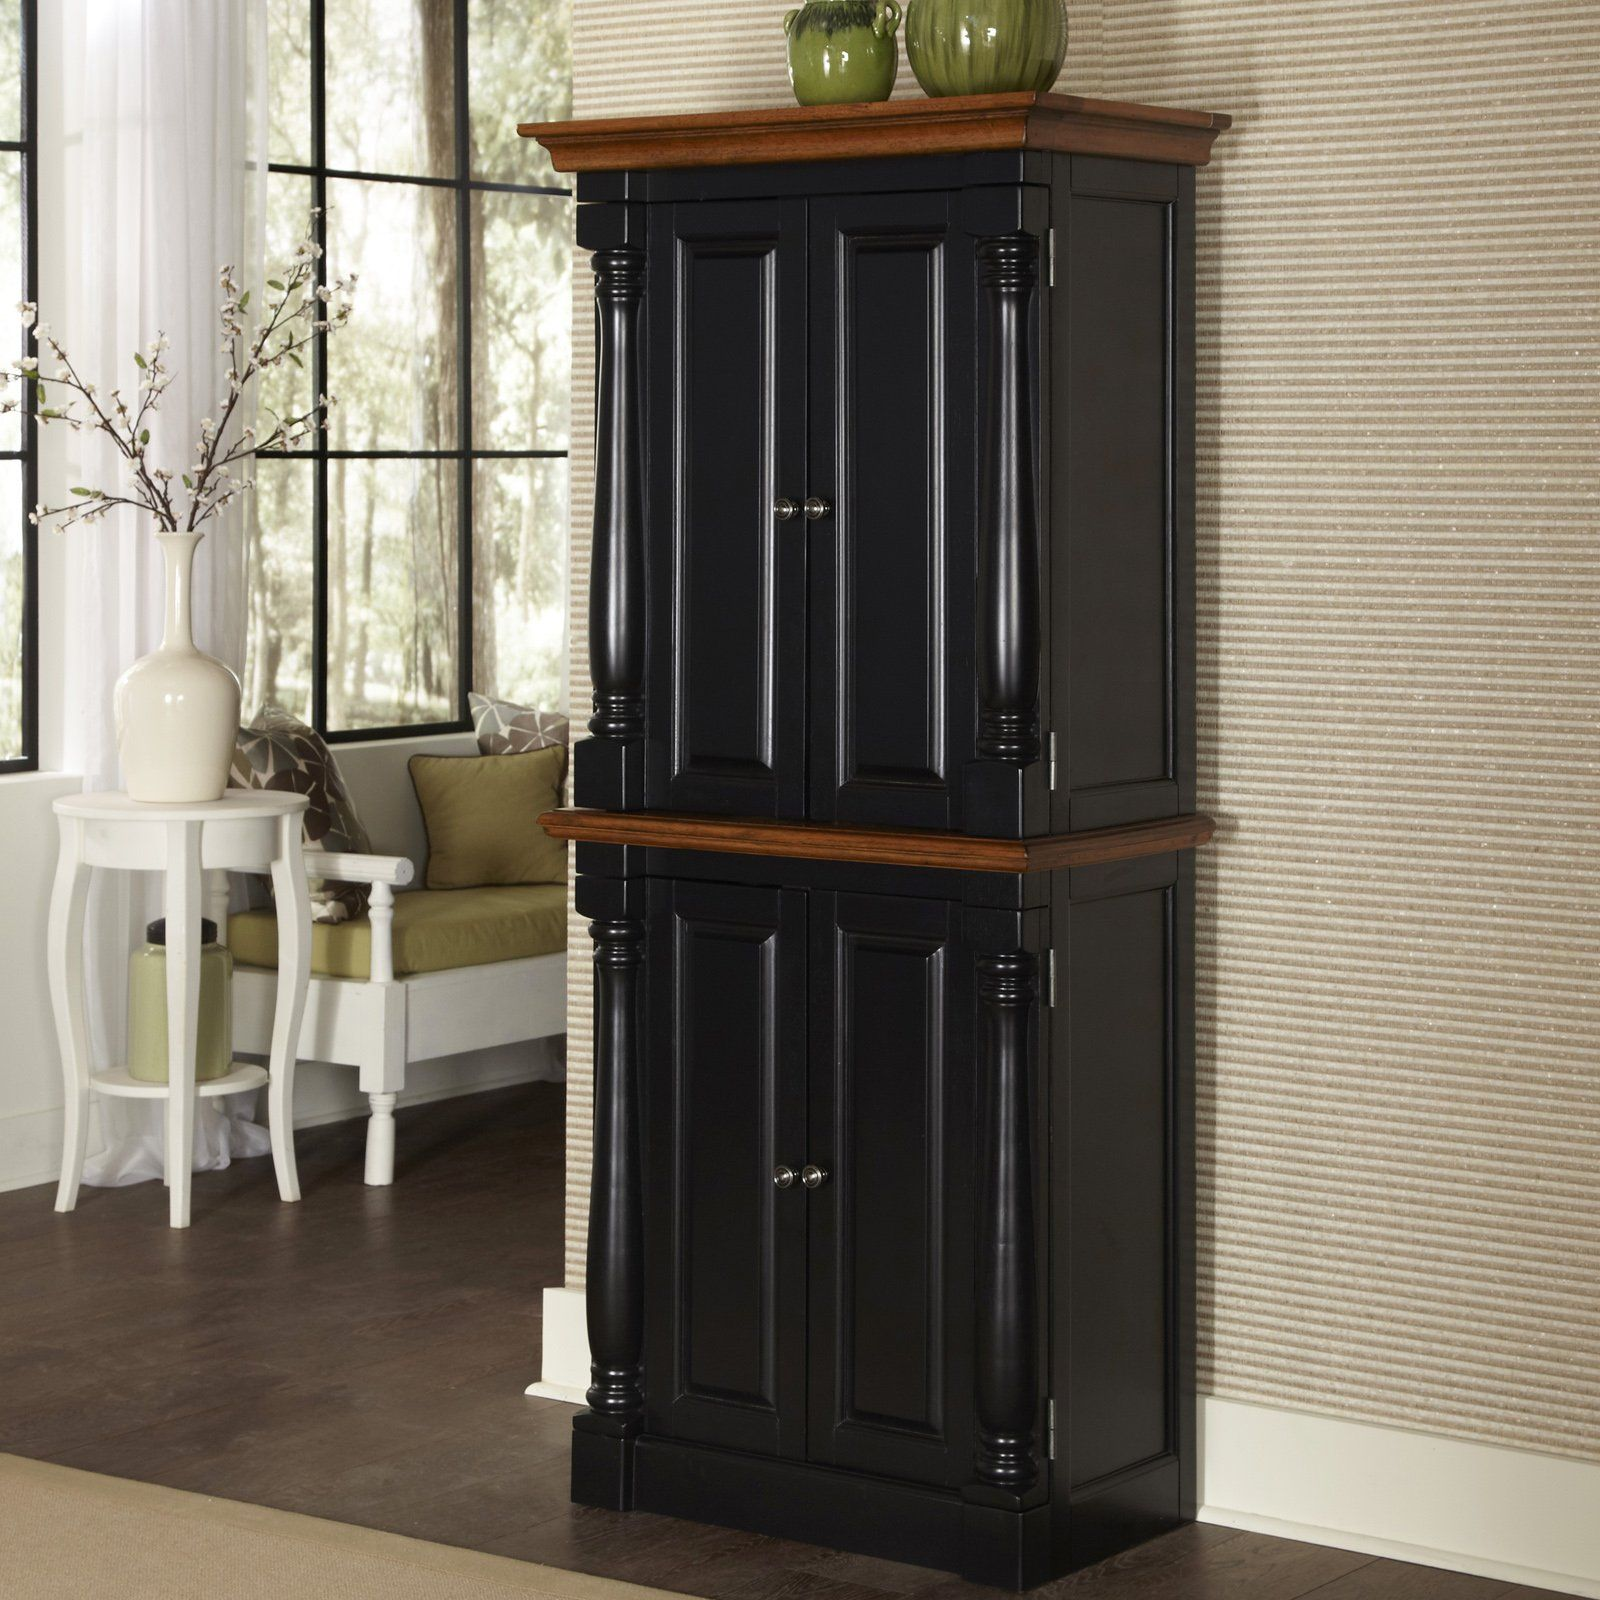 Have To Have It Home Styles Monarch Black Amp Oak Kitchen Pantry 638 98 Stand Alone Kitchen Pantry Pantry Cabinet Free Standing Wood Pantry Cabinet